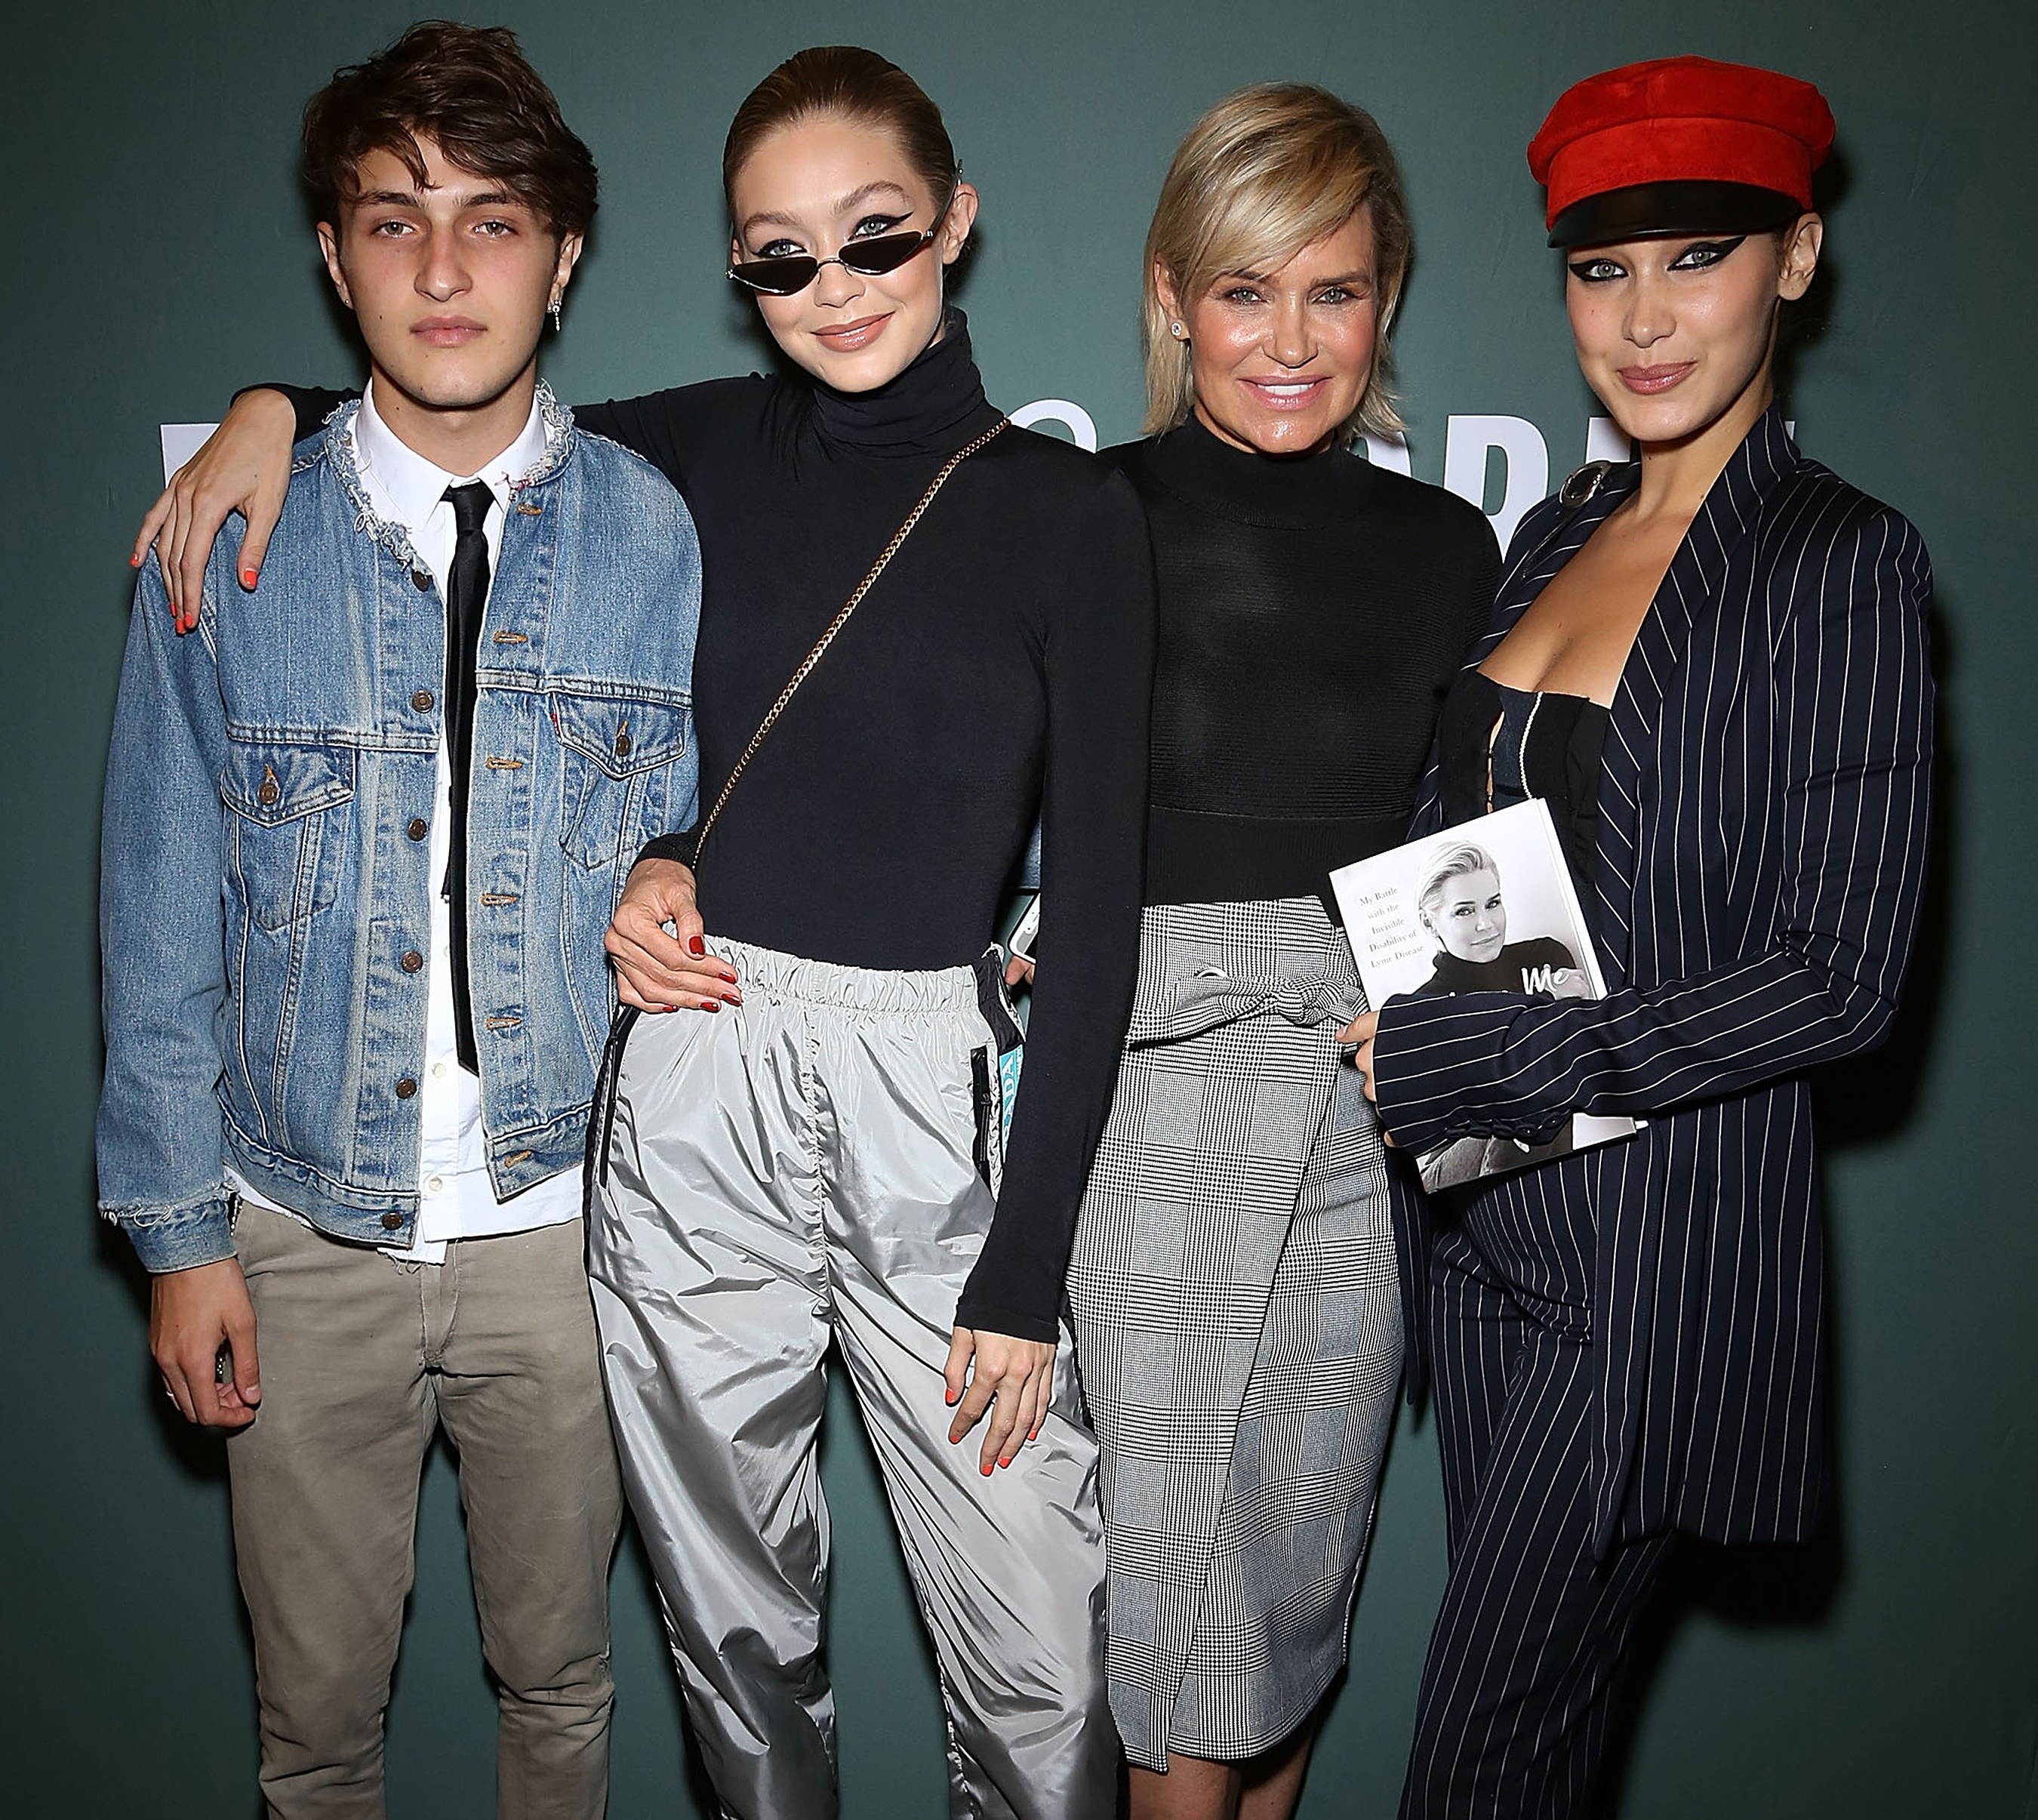 Yolanda Hadid Slams Suggestion Her Model Children Have Had Cosmetic Fillers or Botox Injected